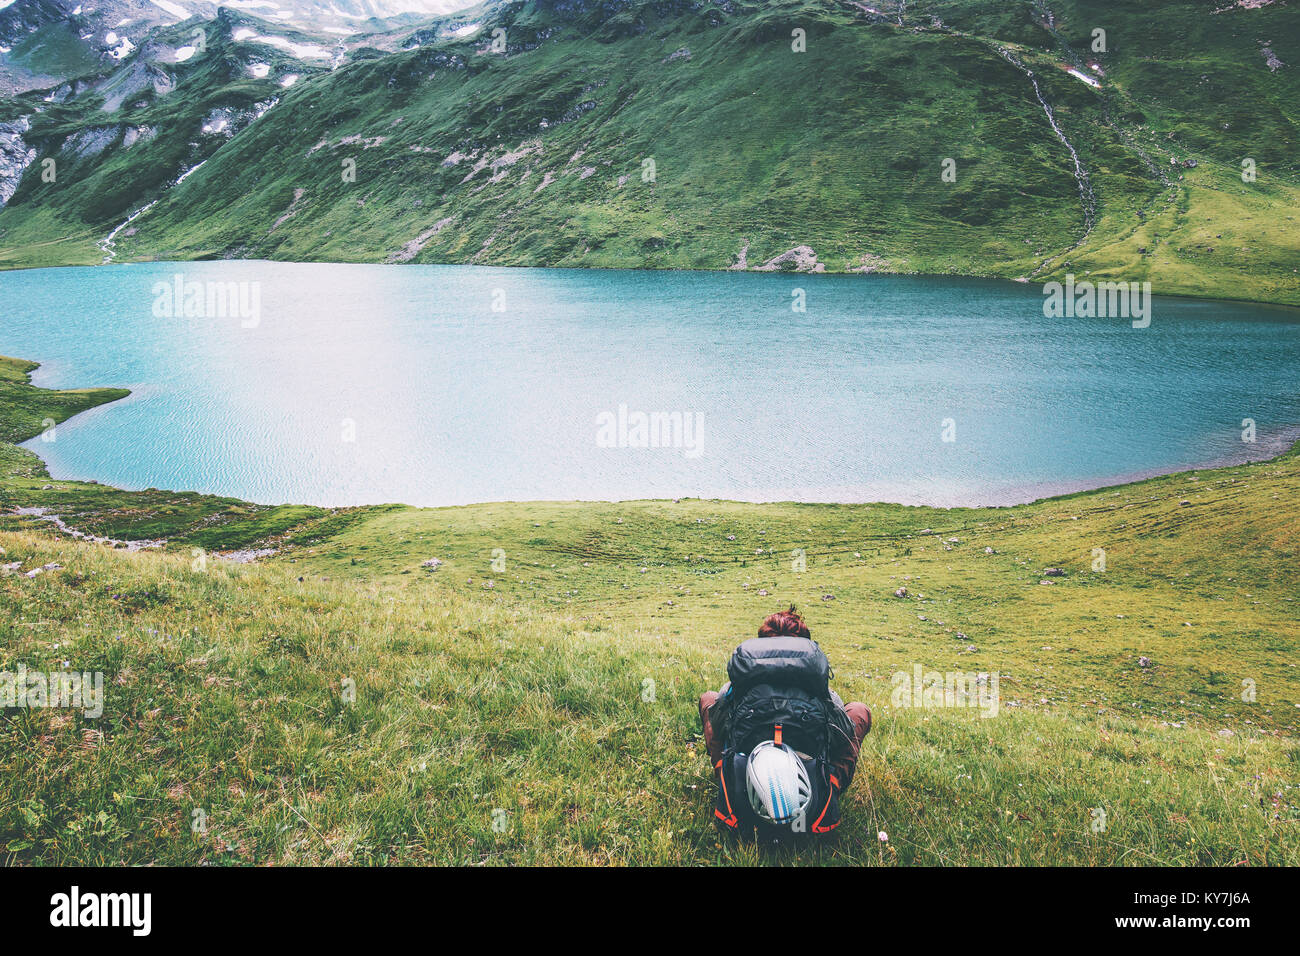 Traveler Man enjoying lake and mountains view  Travel Lifestyle emotions concept adventure vacations outdoor - Stock Image